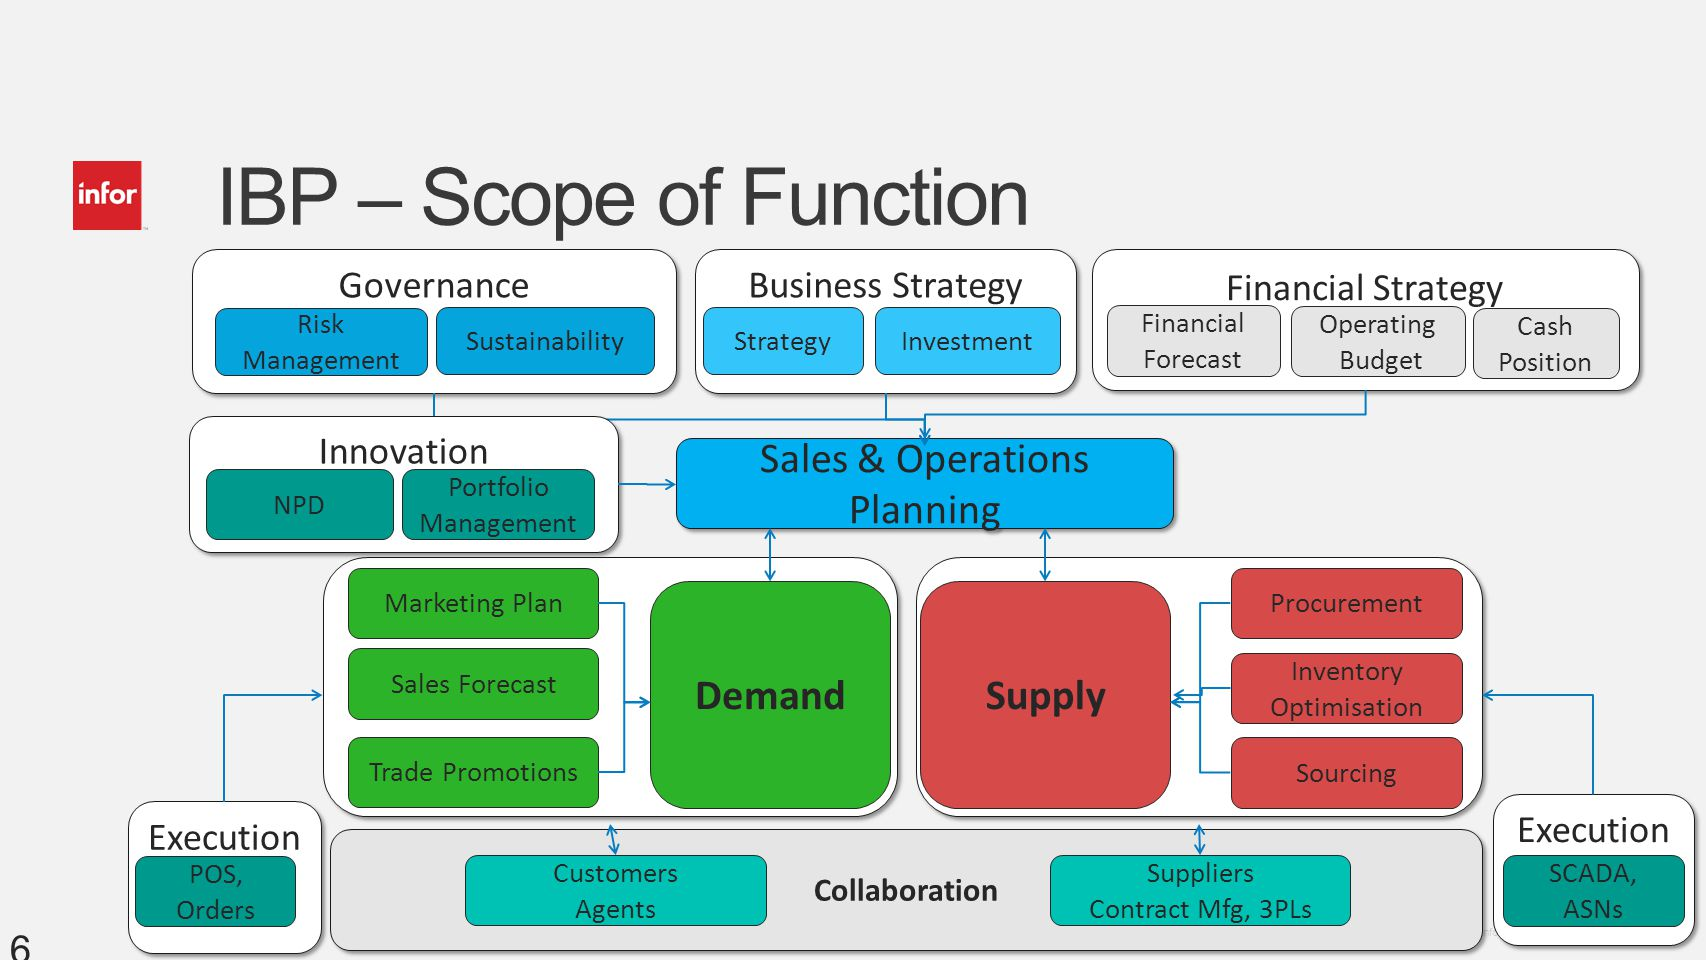 IBP – Scope of Function Sales & Operations Planning Demand Supply